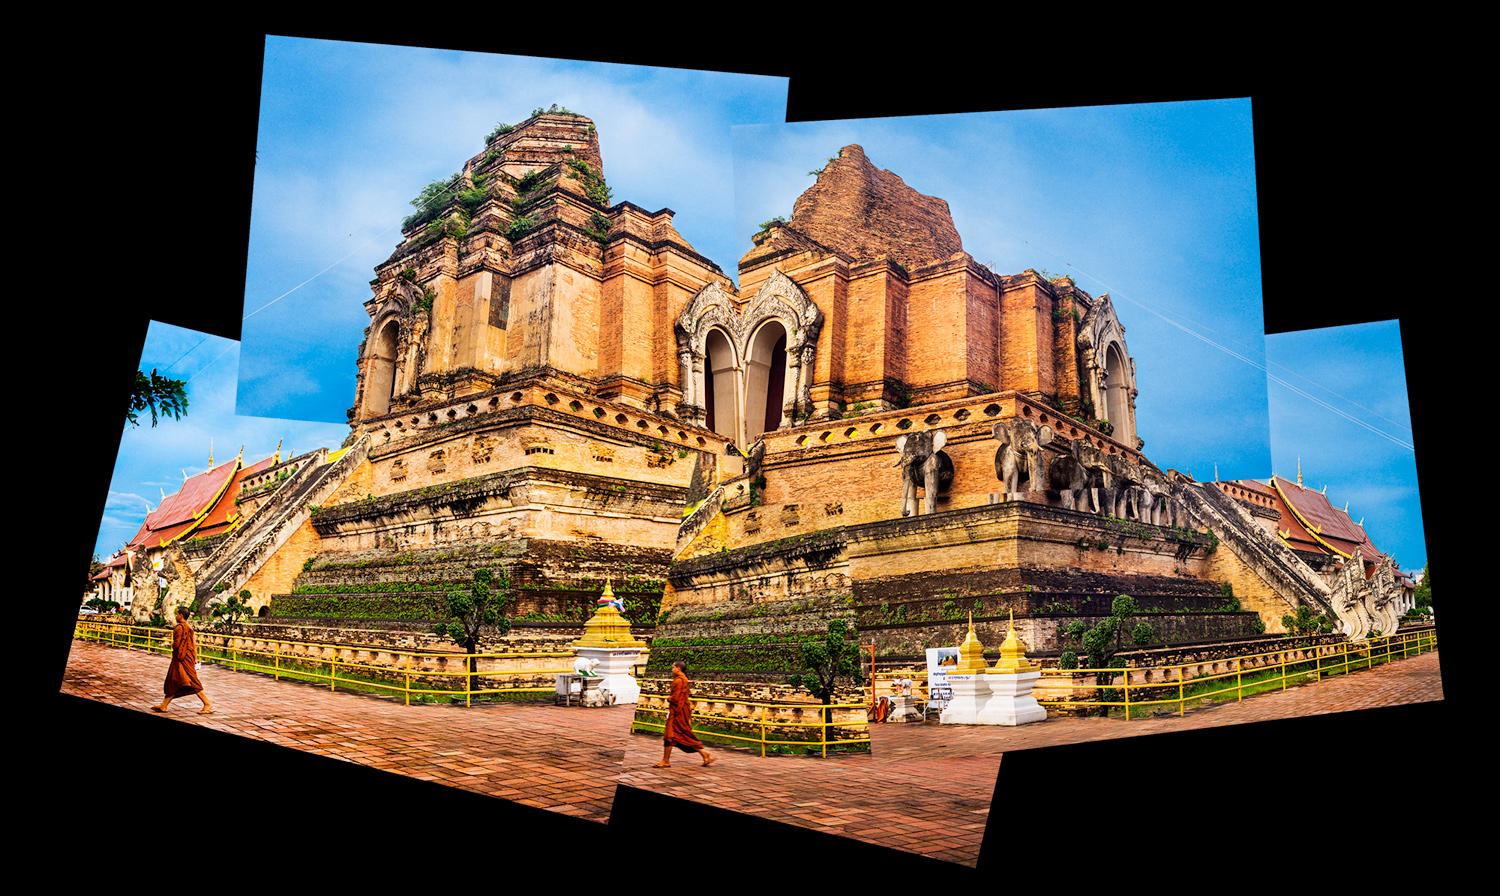 Chedi Luang How To Make Amazing Photomontages